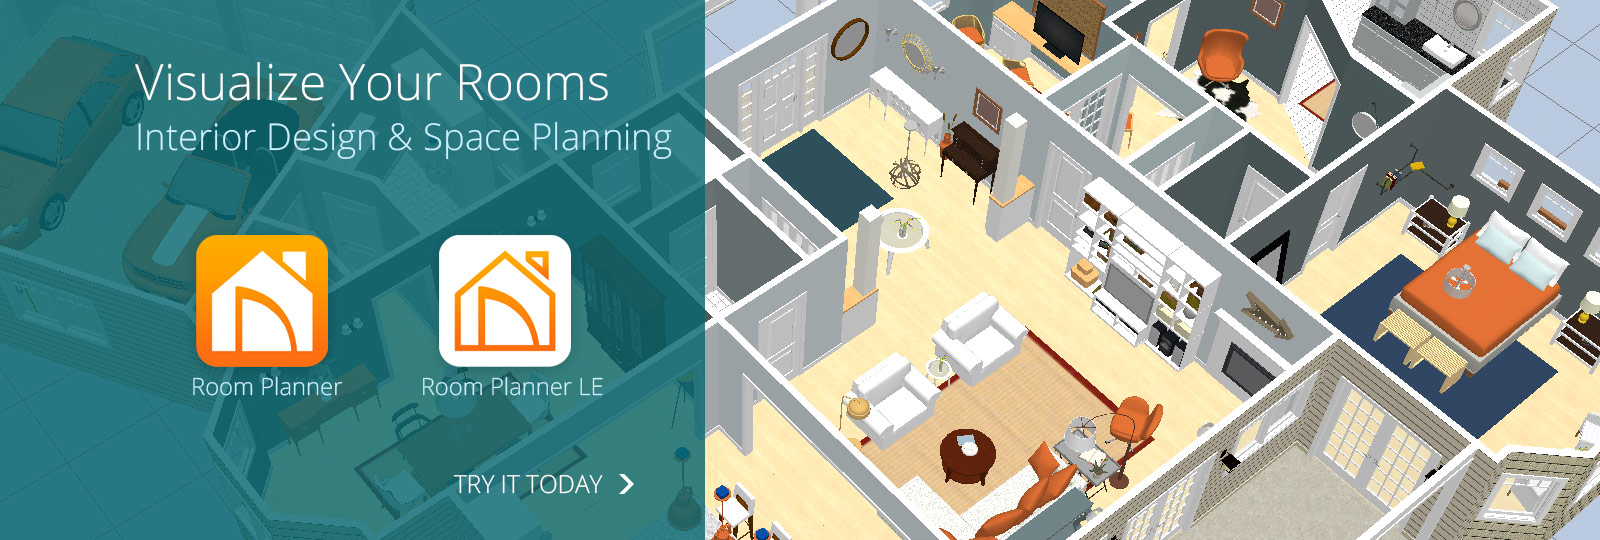 Home Planner Mobile App Room Design App For Windows Download Home